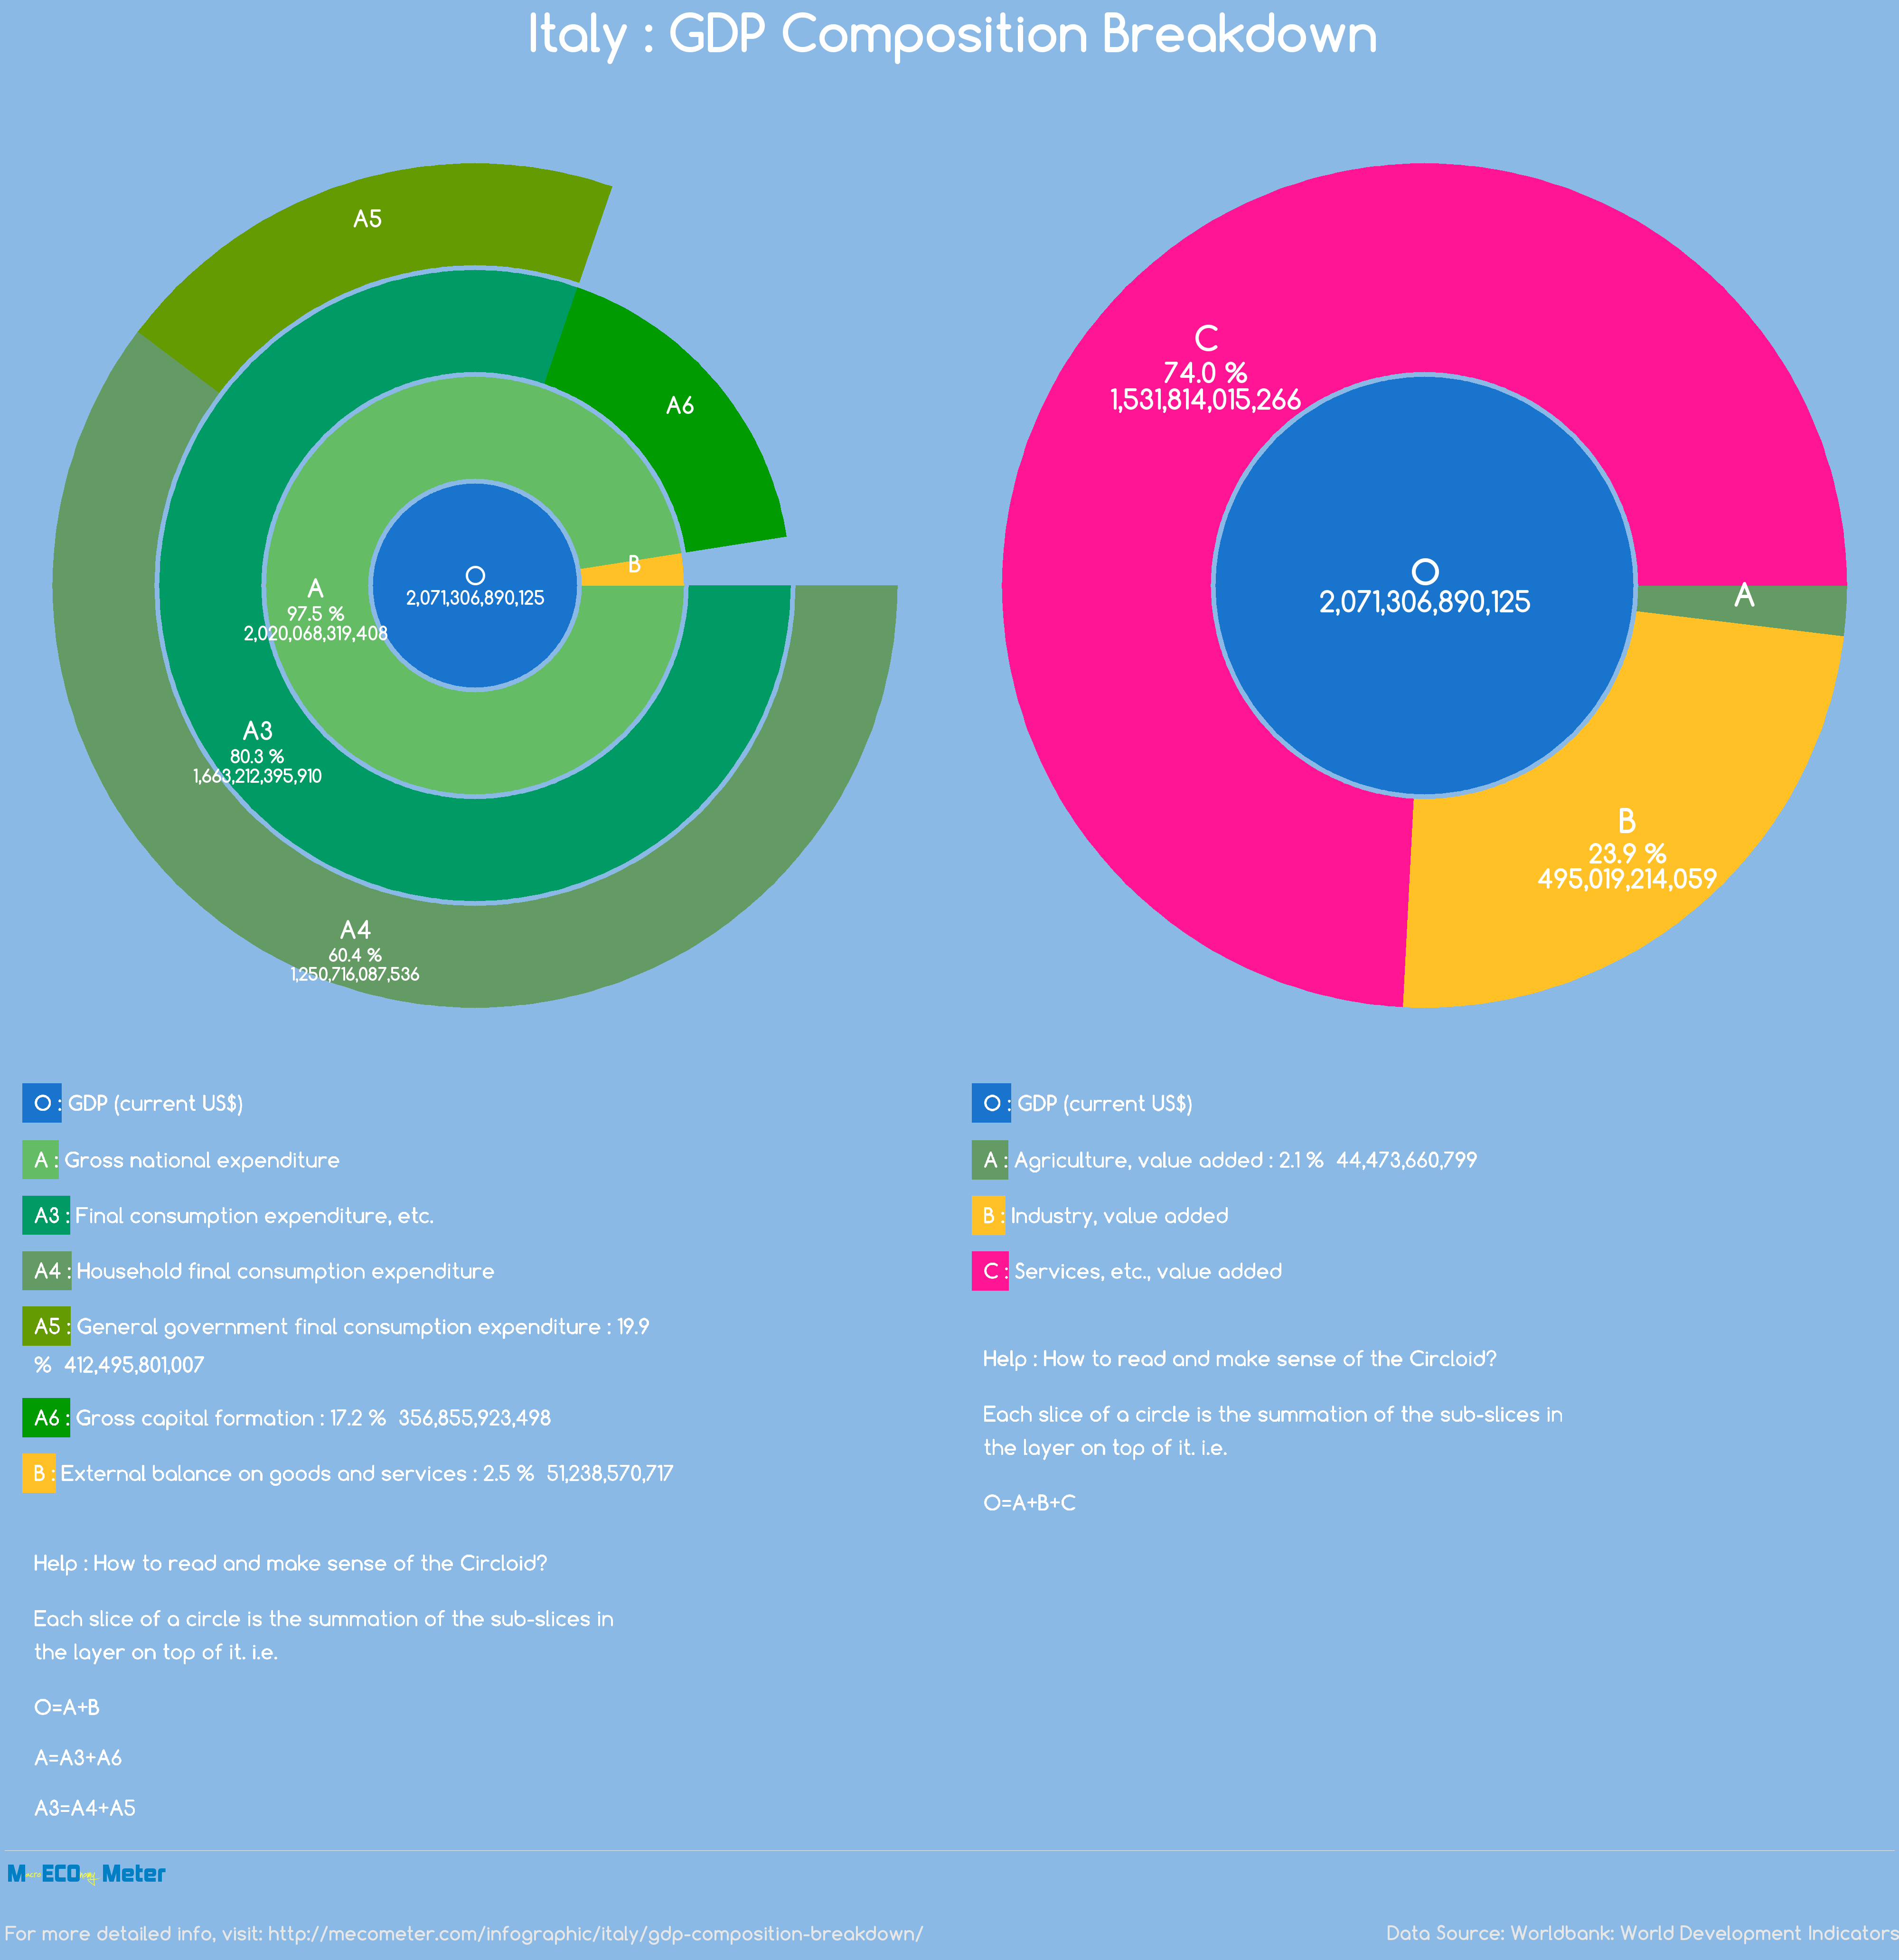 Italy : GDP Composition Breakdown